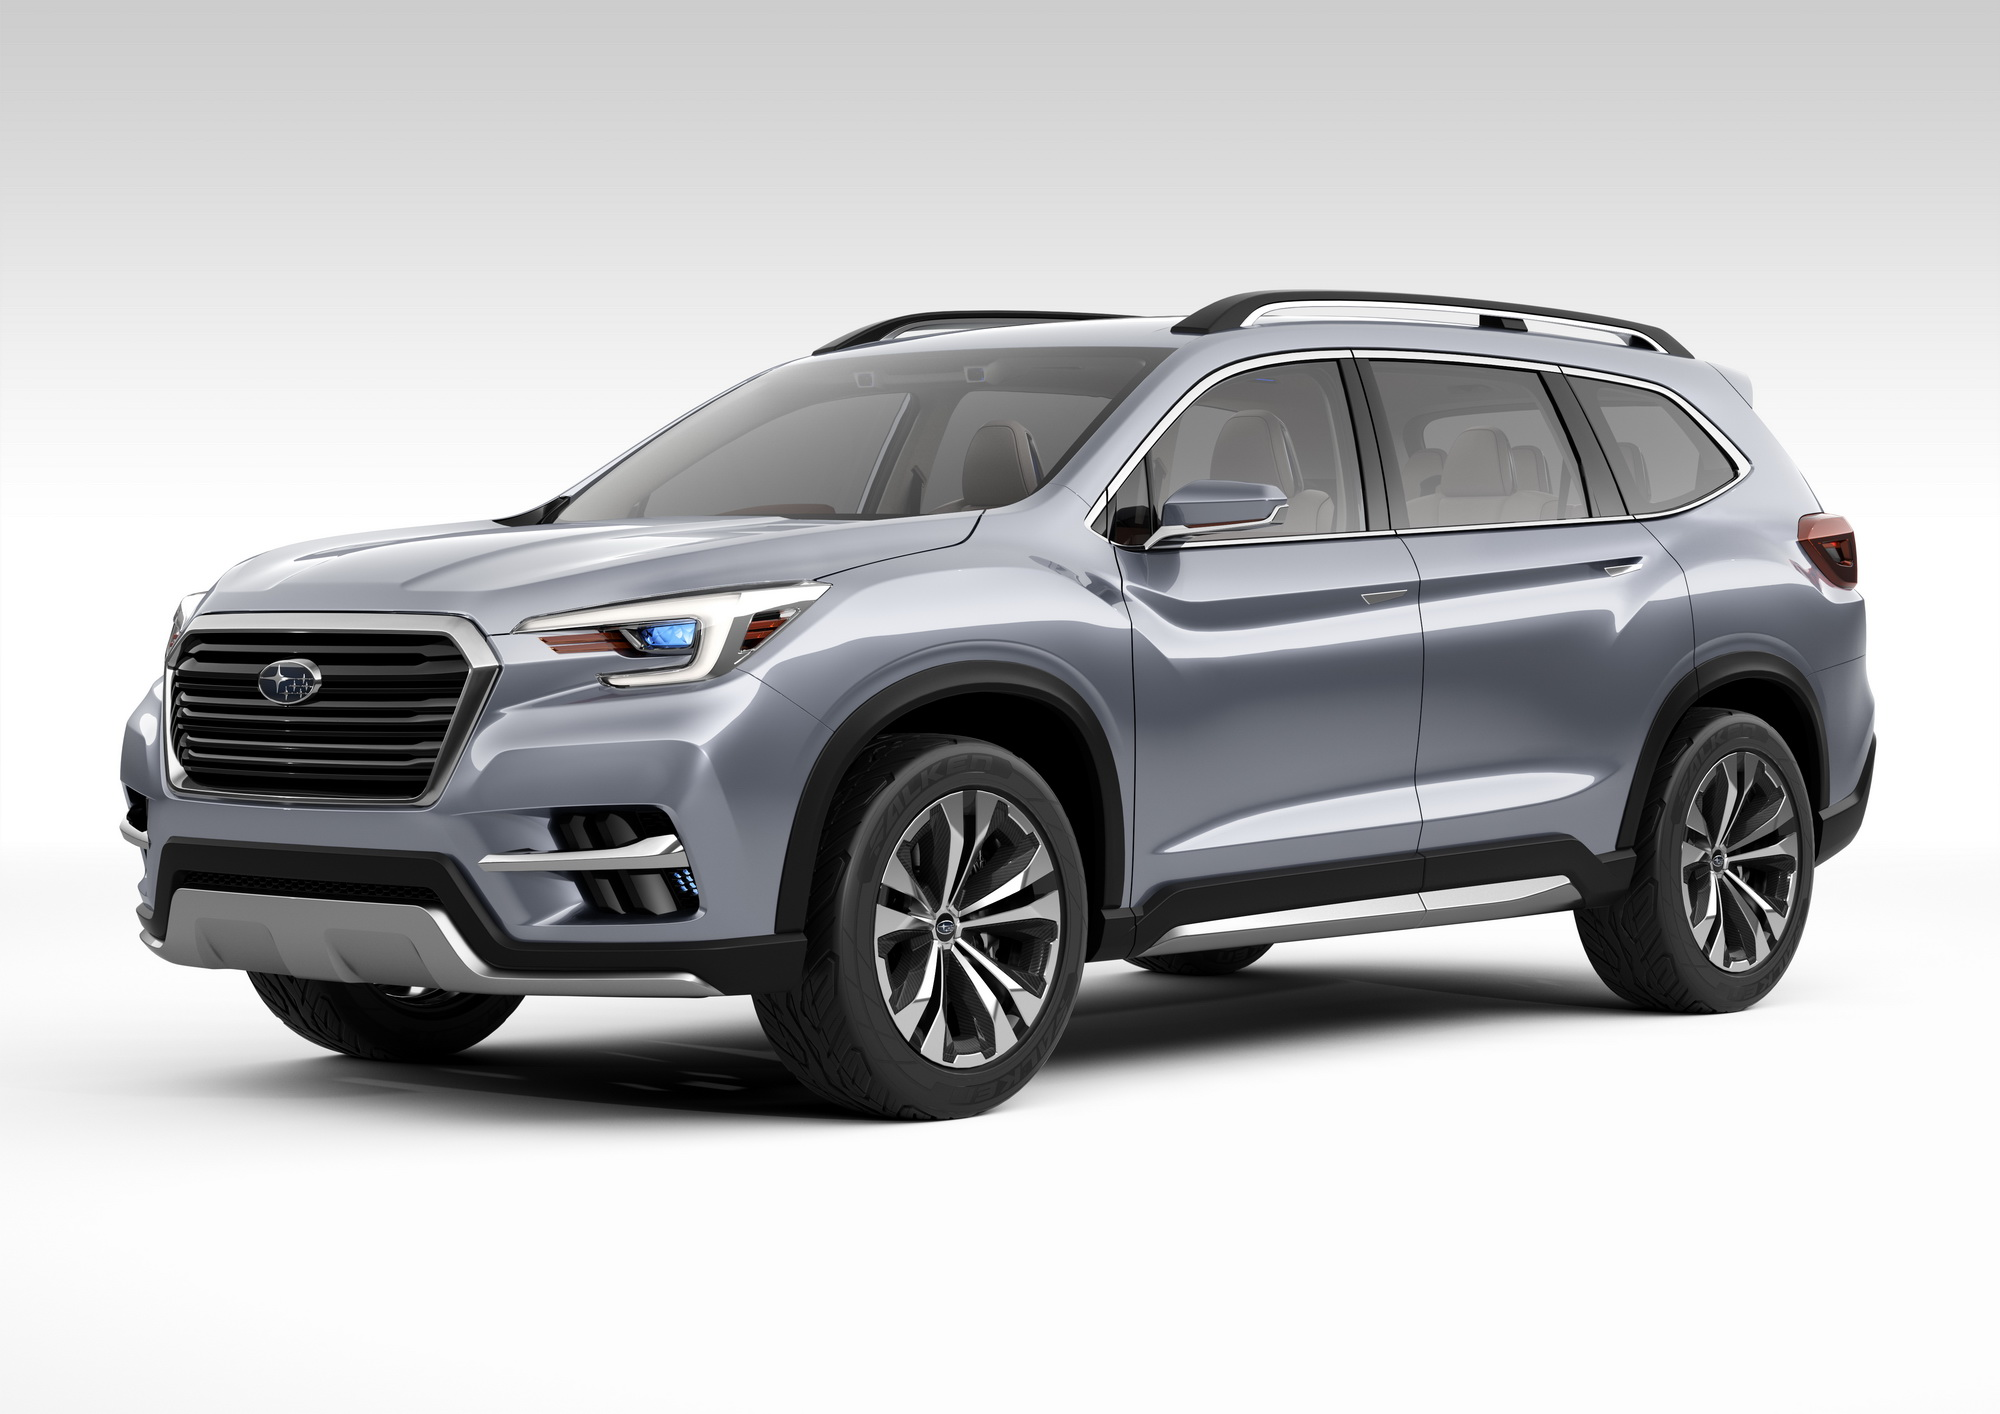 News Subaru Calgary Kia Sorento Captain Chairs The Exterior Design Of Concept Follows Subarus Dynamic X Solid Theme With Powerful Fender Flares Representing All Wheel Drive System And A